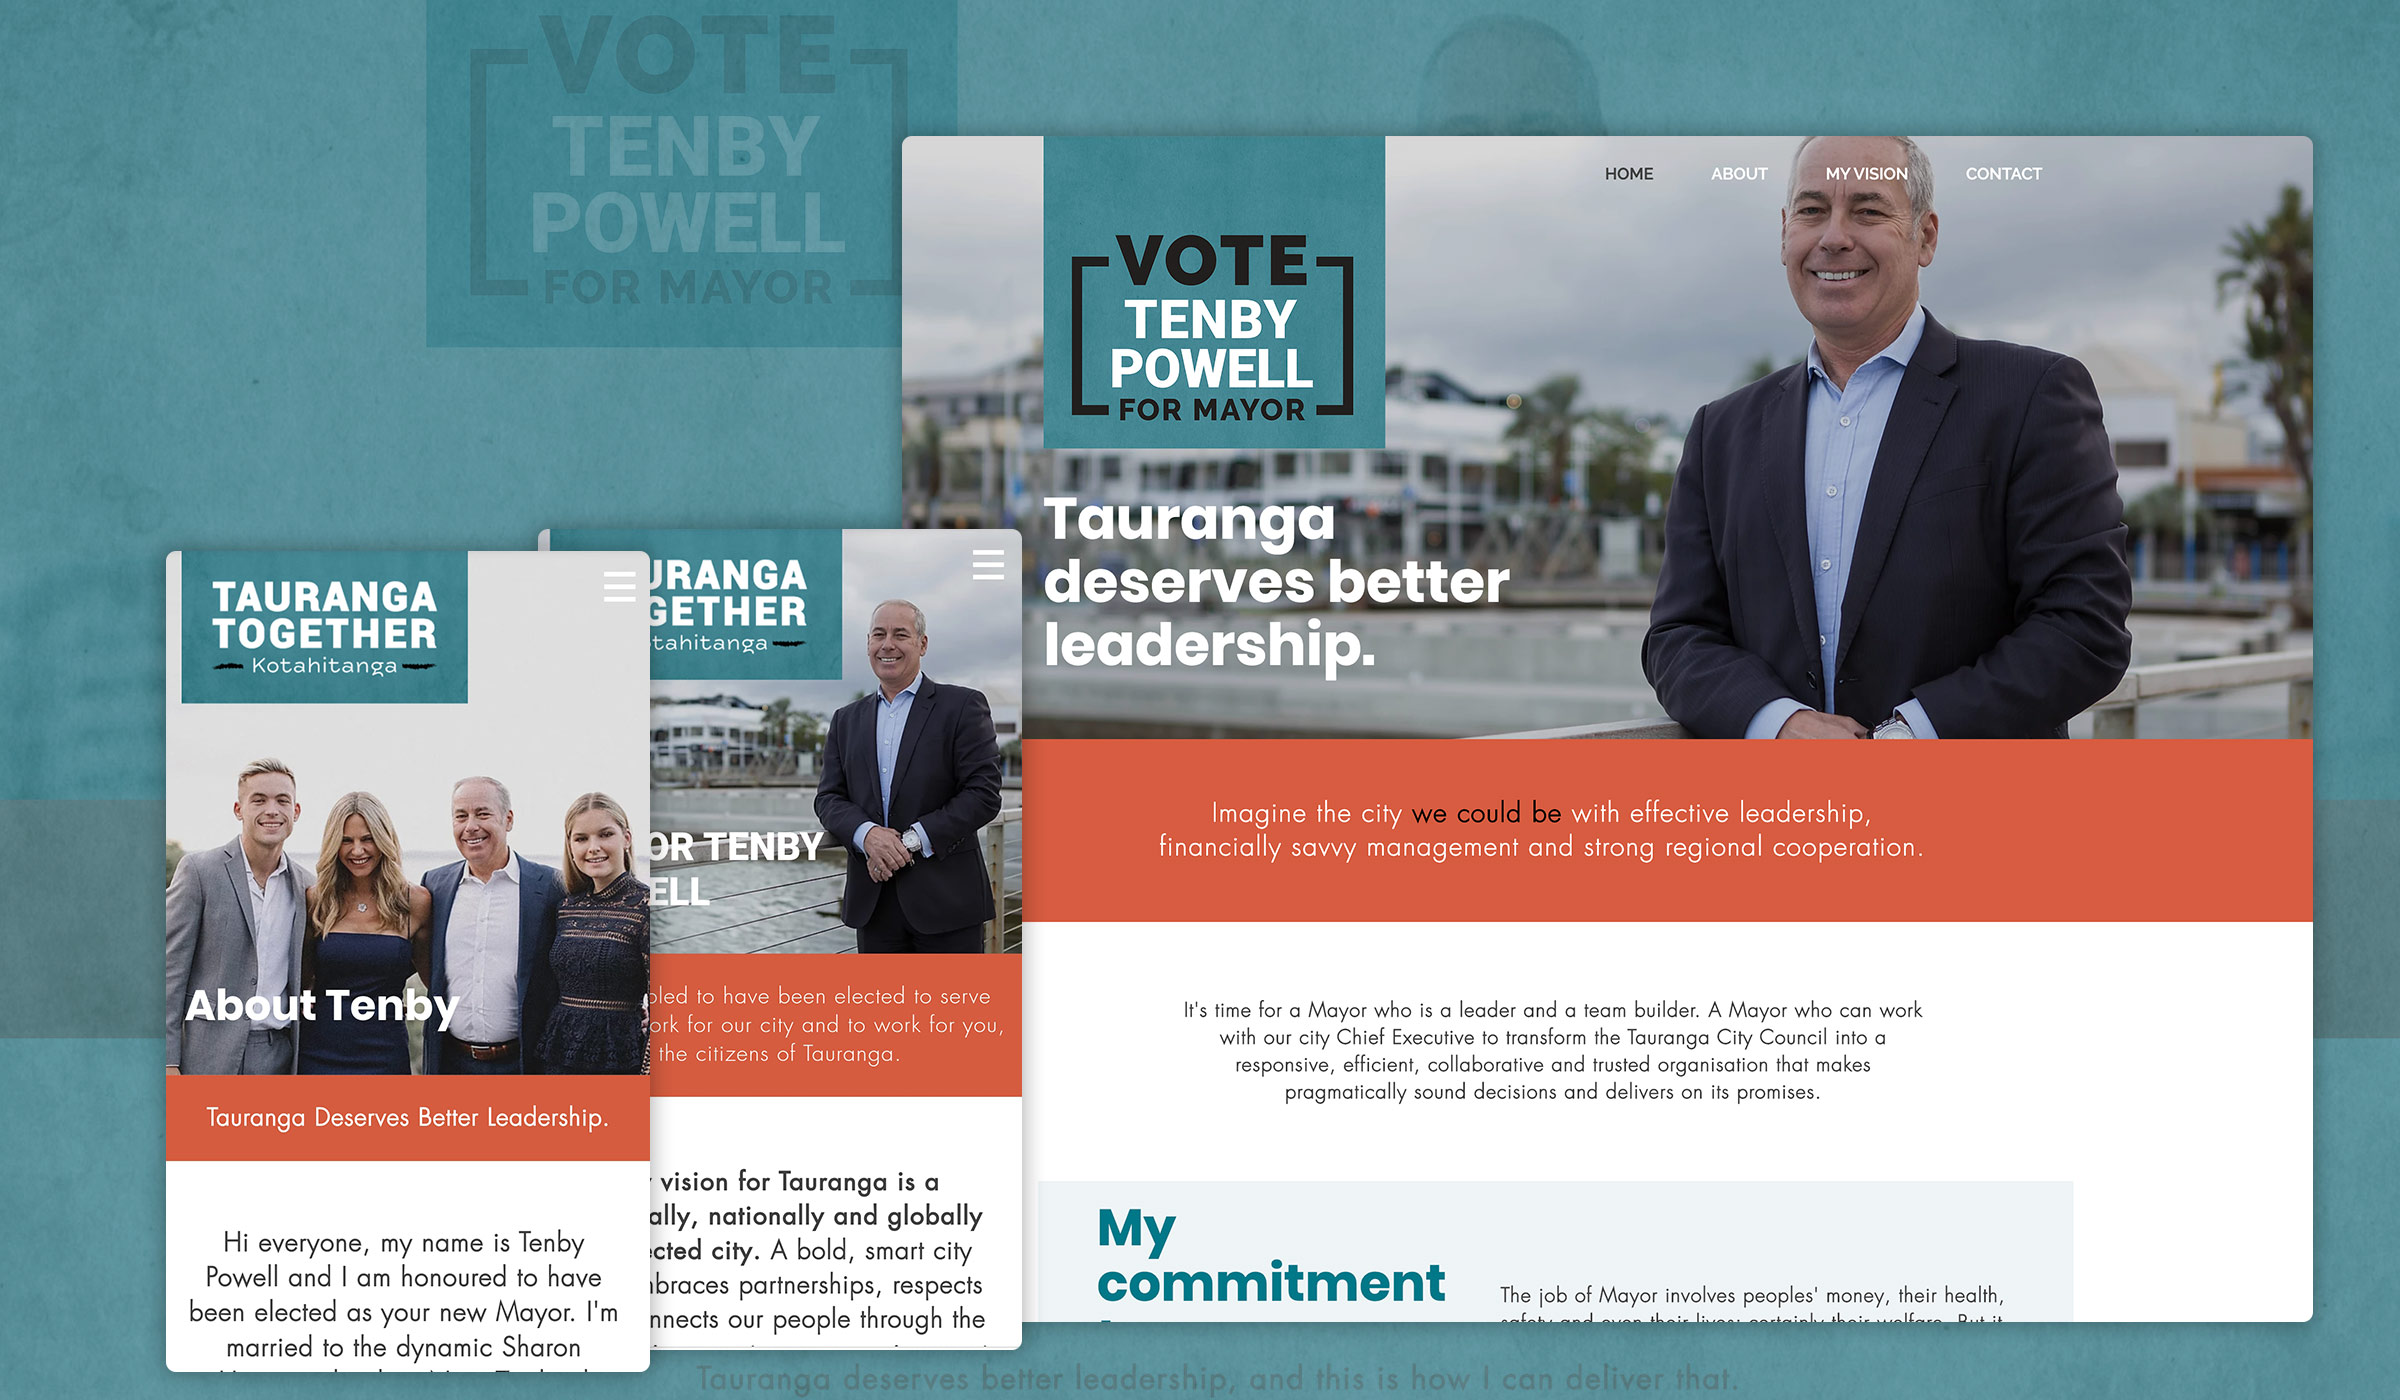 We created a fully responsive website for the campaign which with Tenby Powell we updated and expanded on. Here's how it looked.